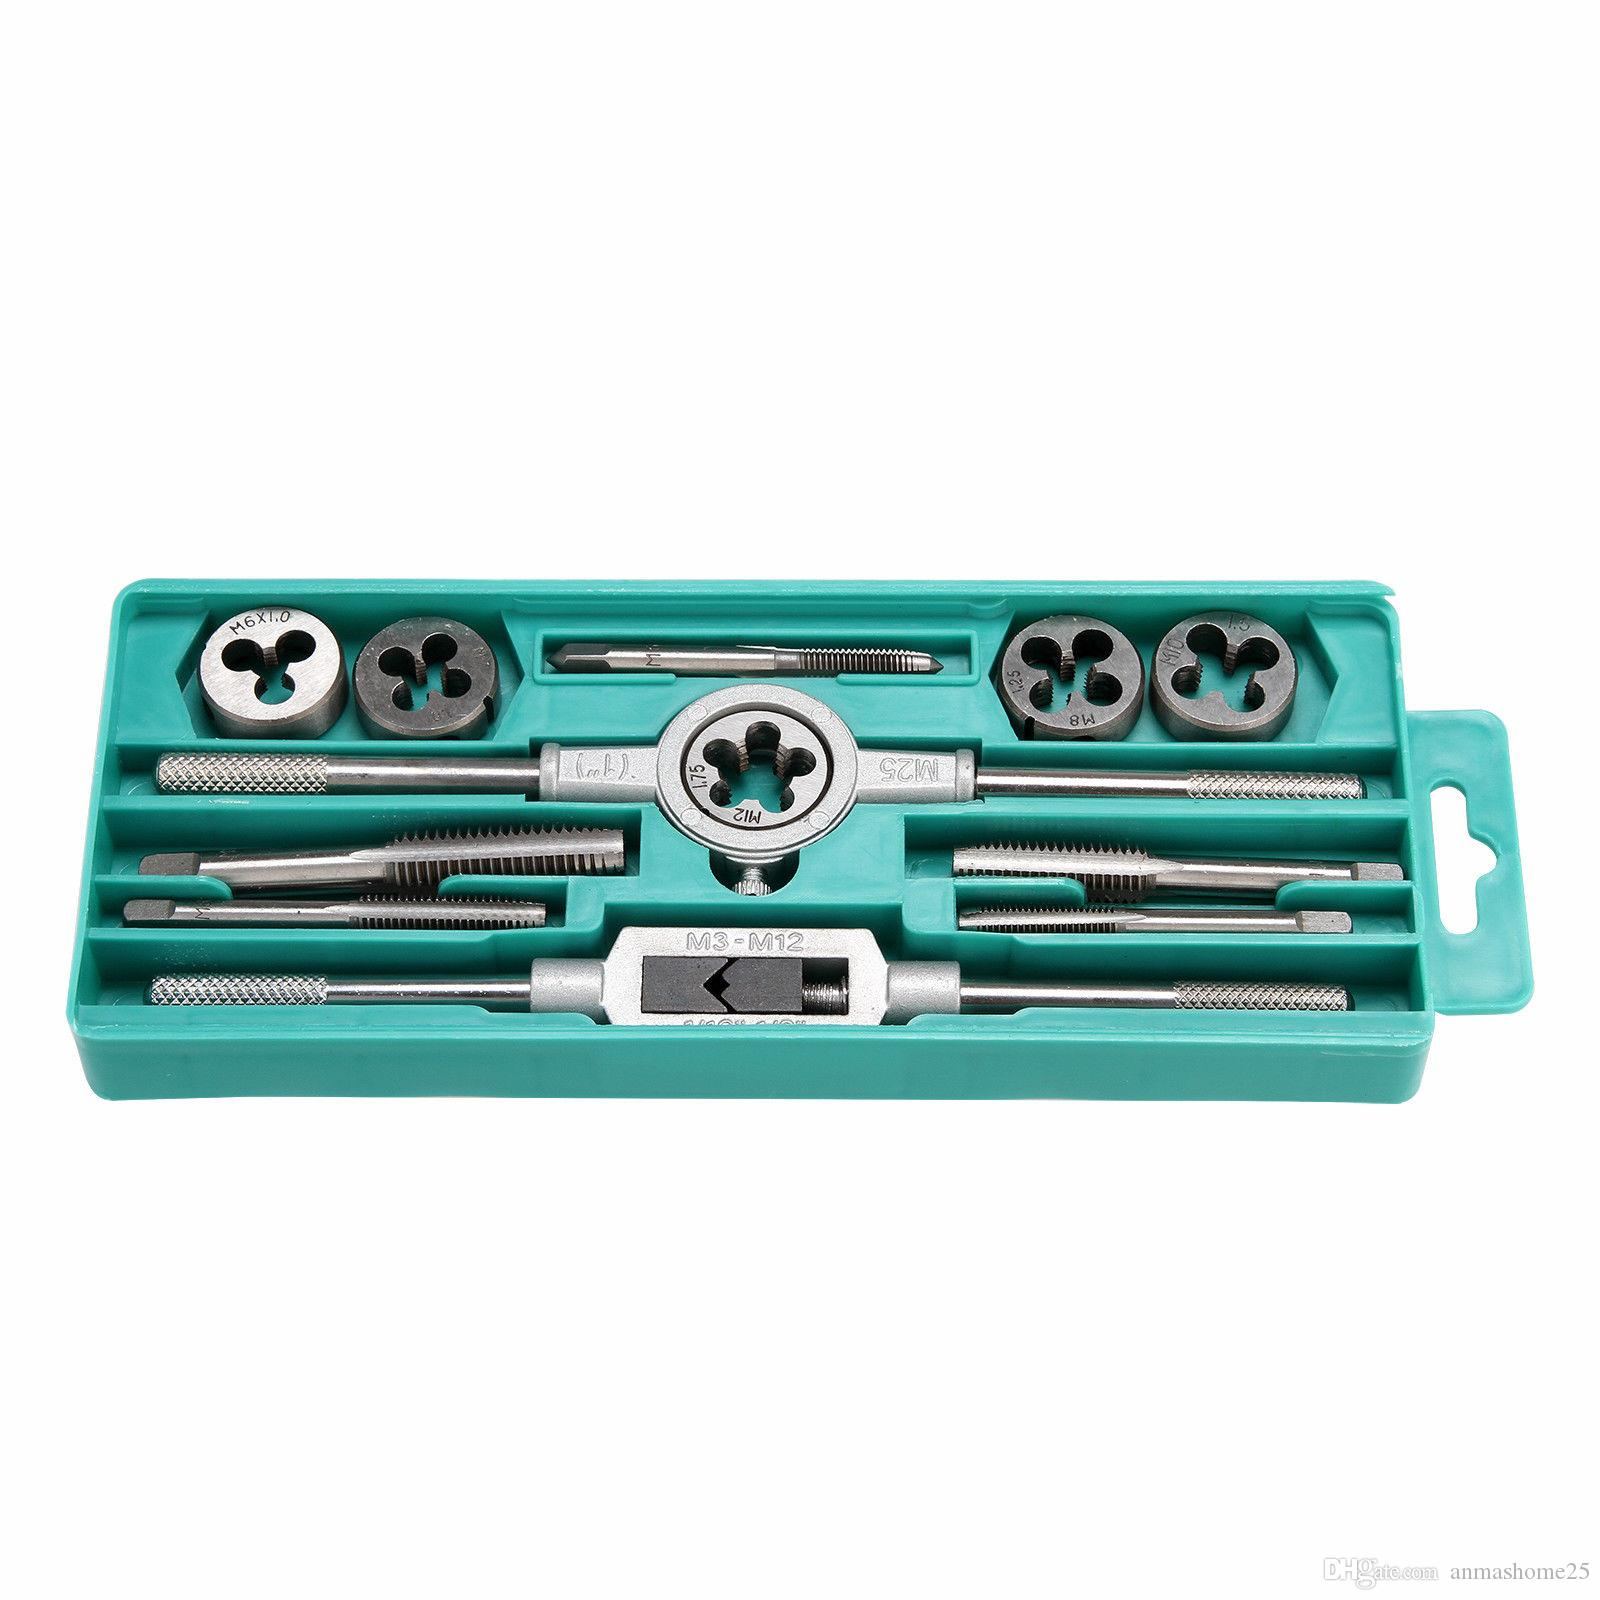 Pro 12 pezzi metrici Tap and Die Set w / Case Screw Extractor Remover Strumenti di inseguimento